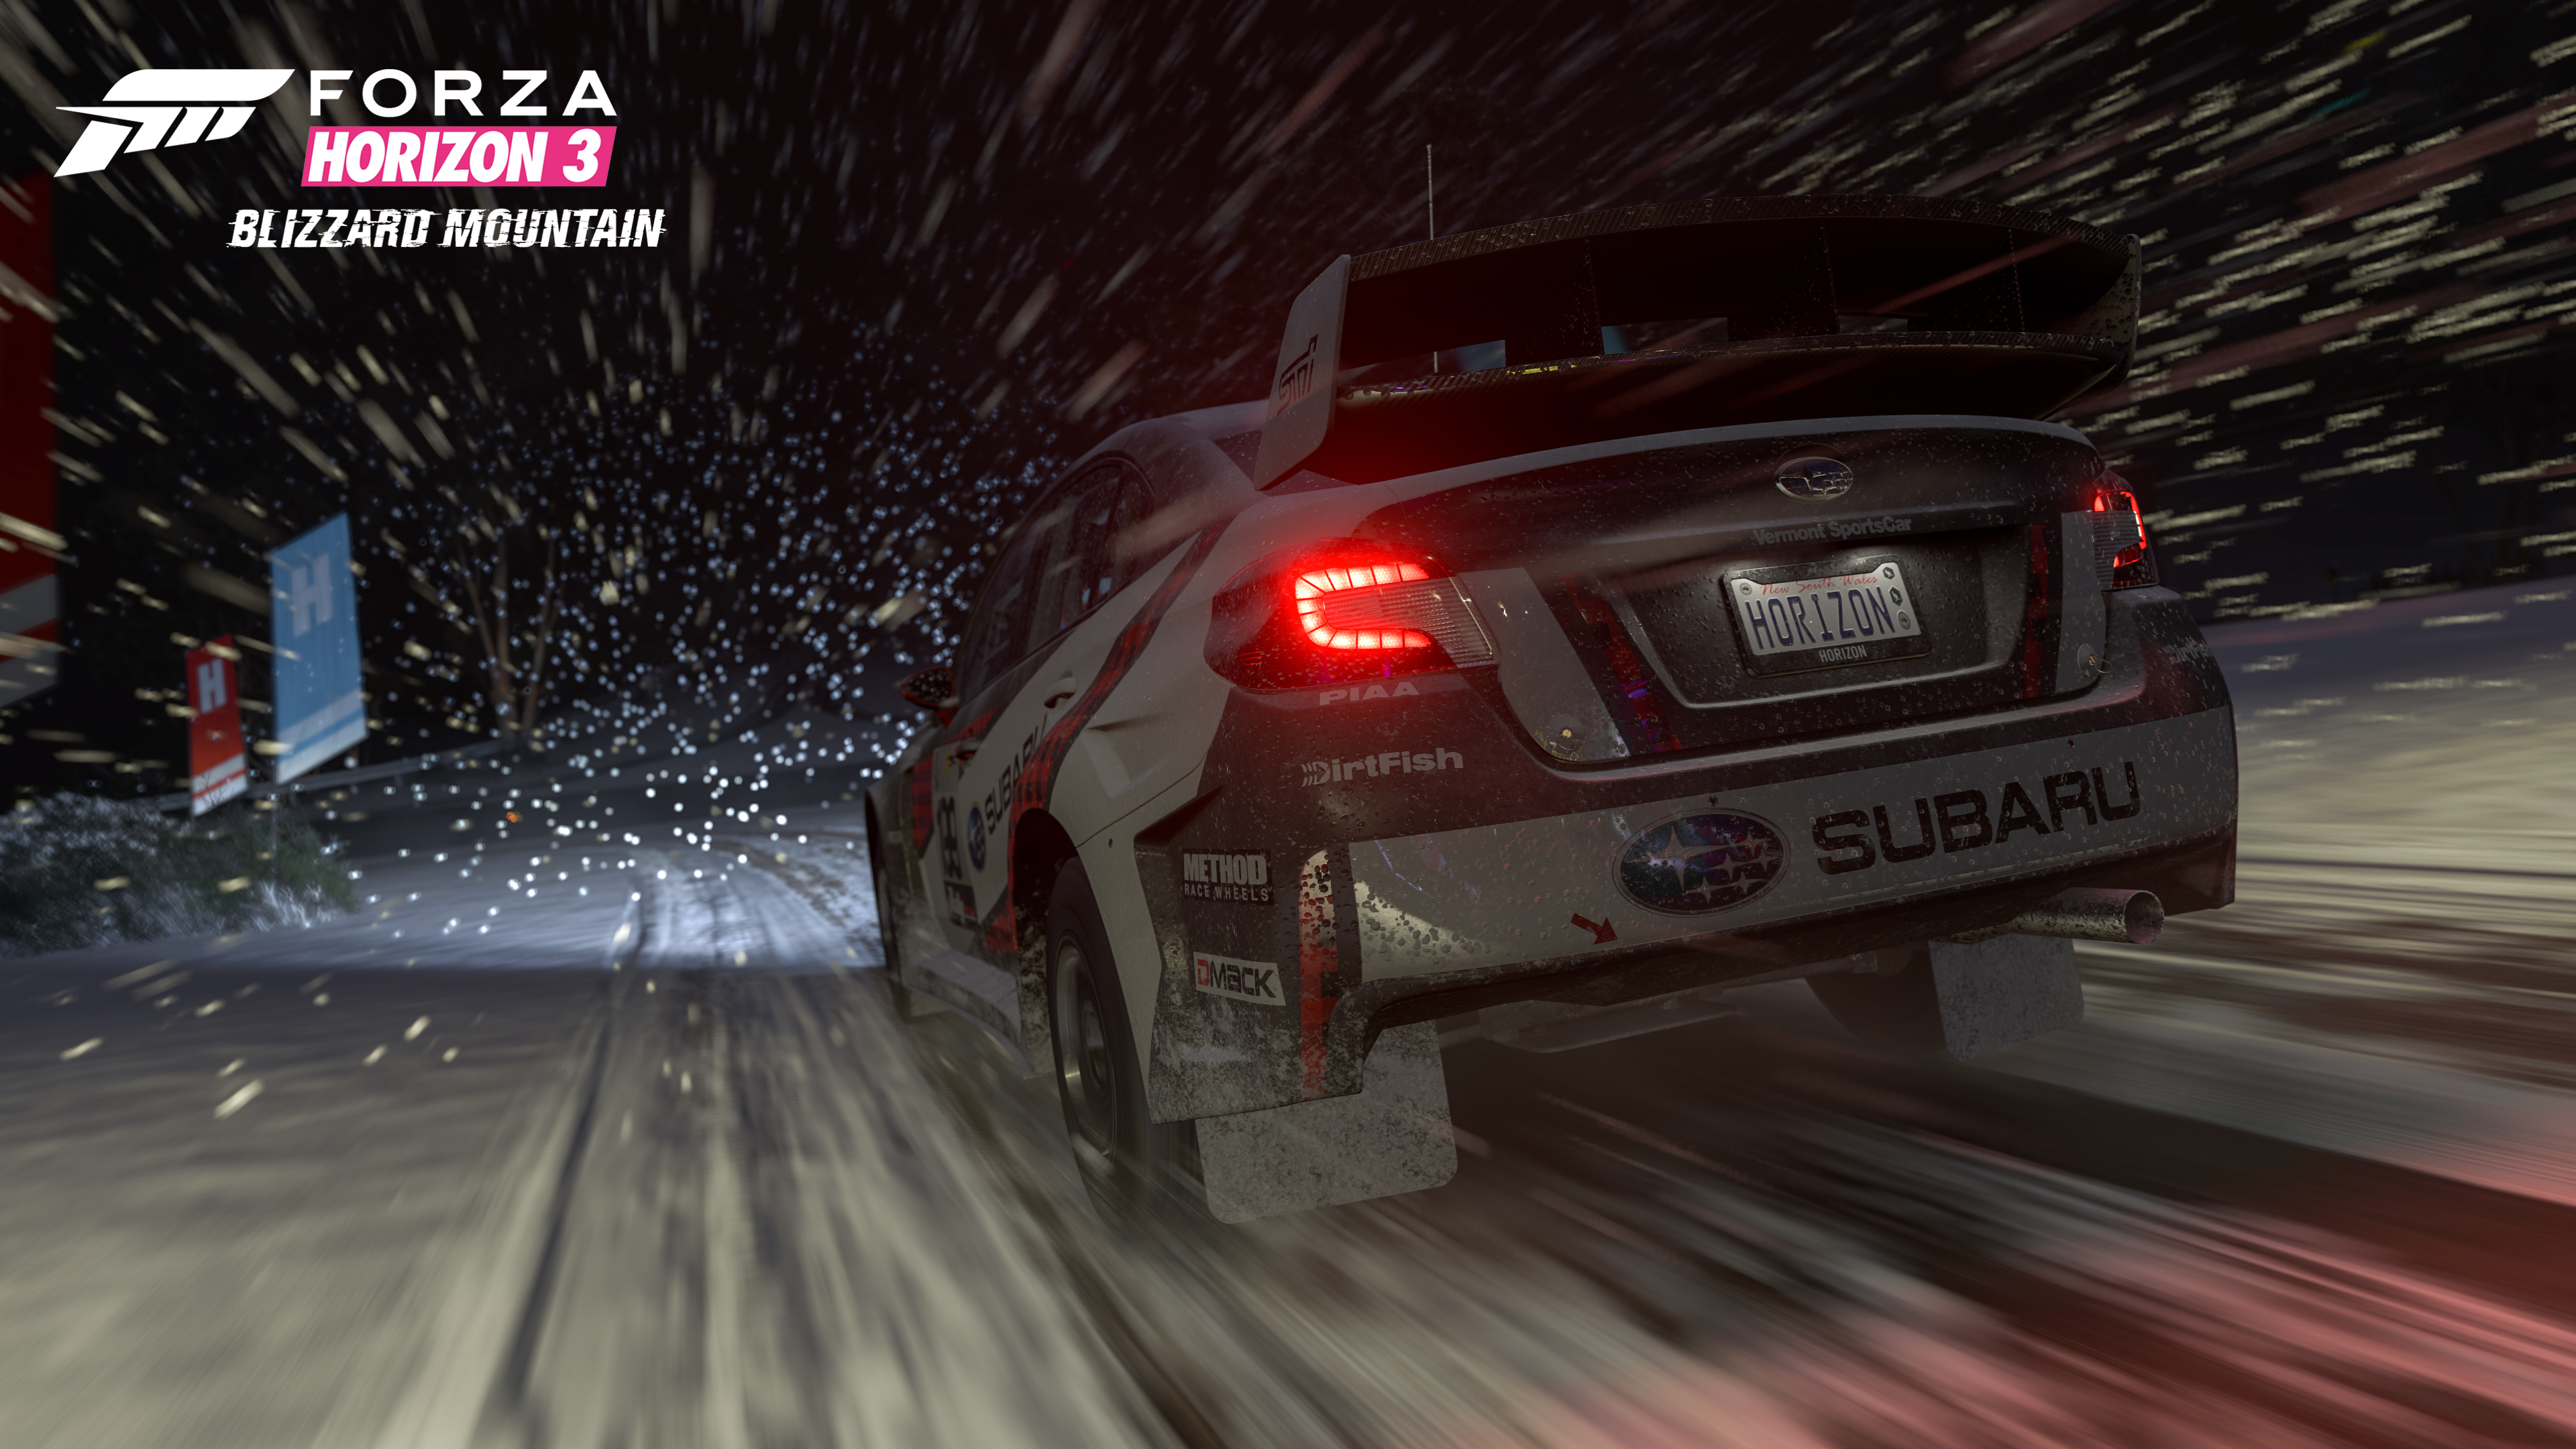 Night Race in Forza Horizon 3 Blizzard Mountain Expansion